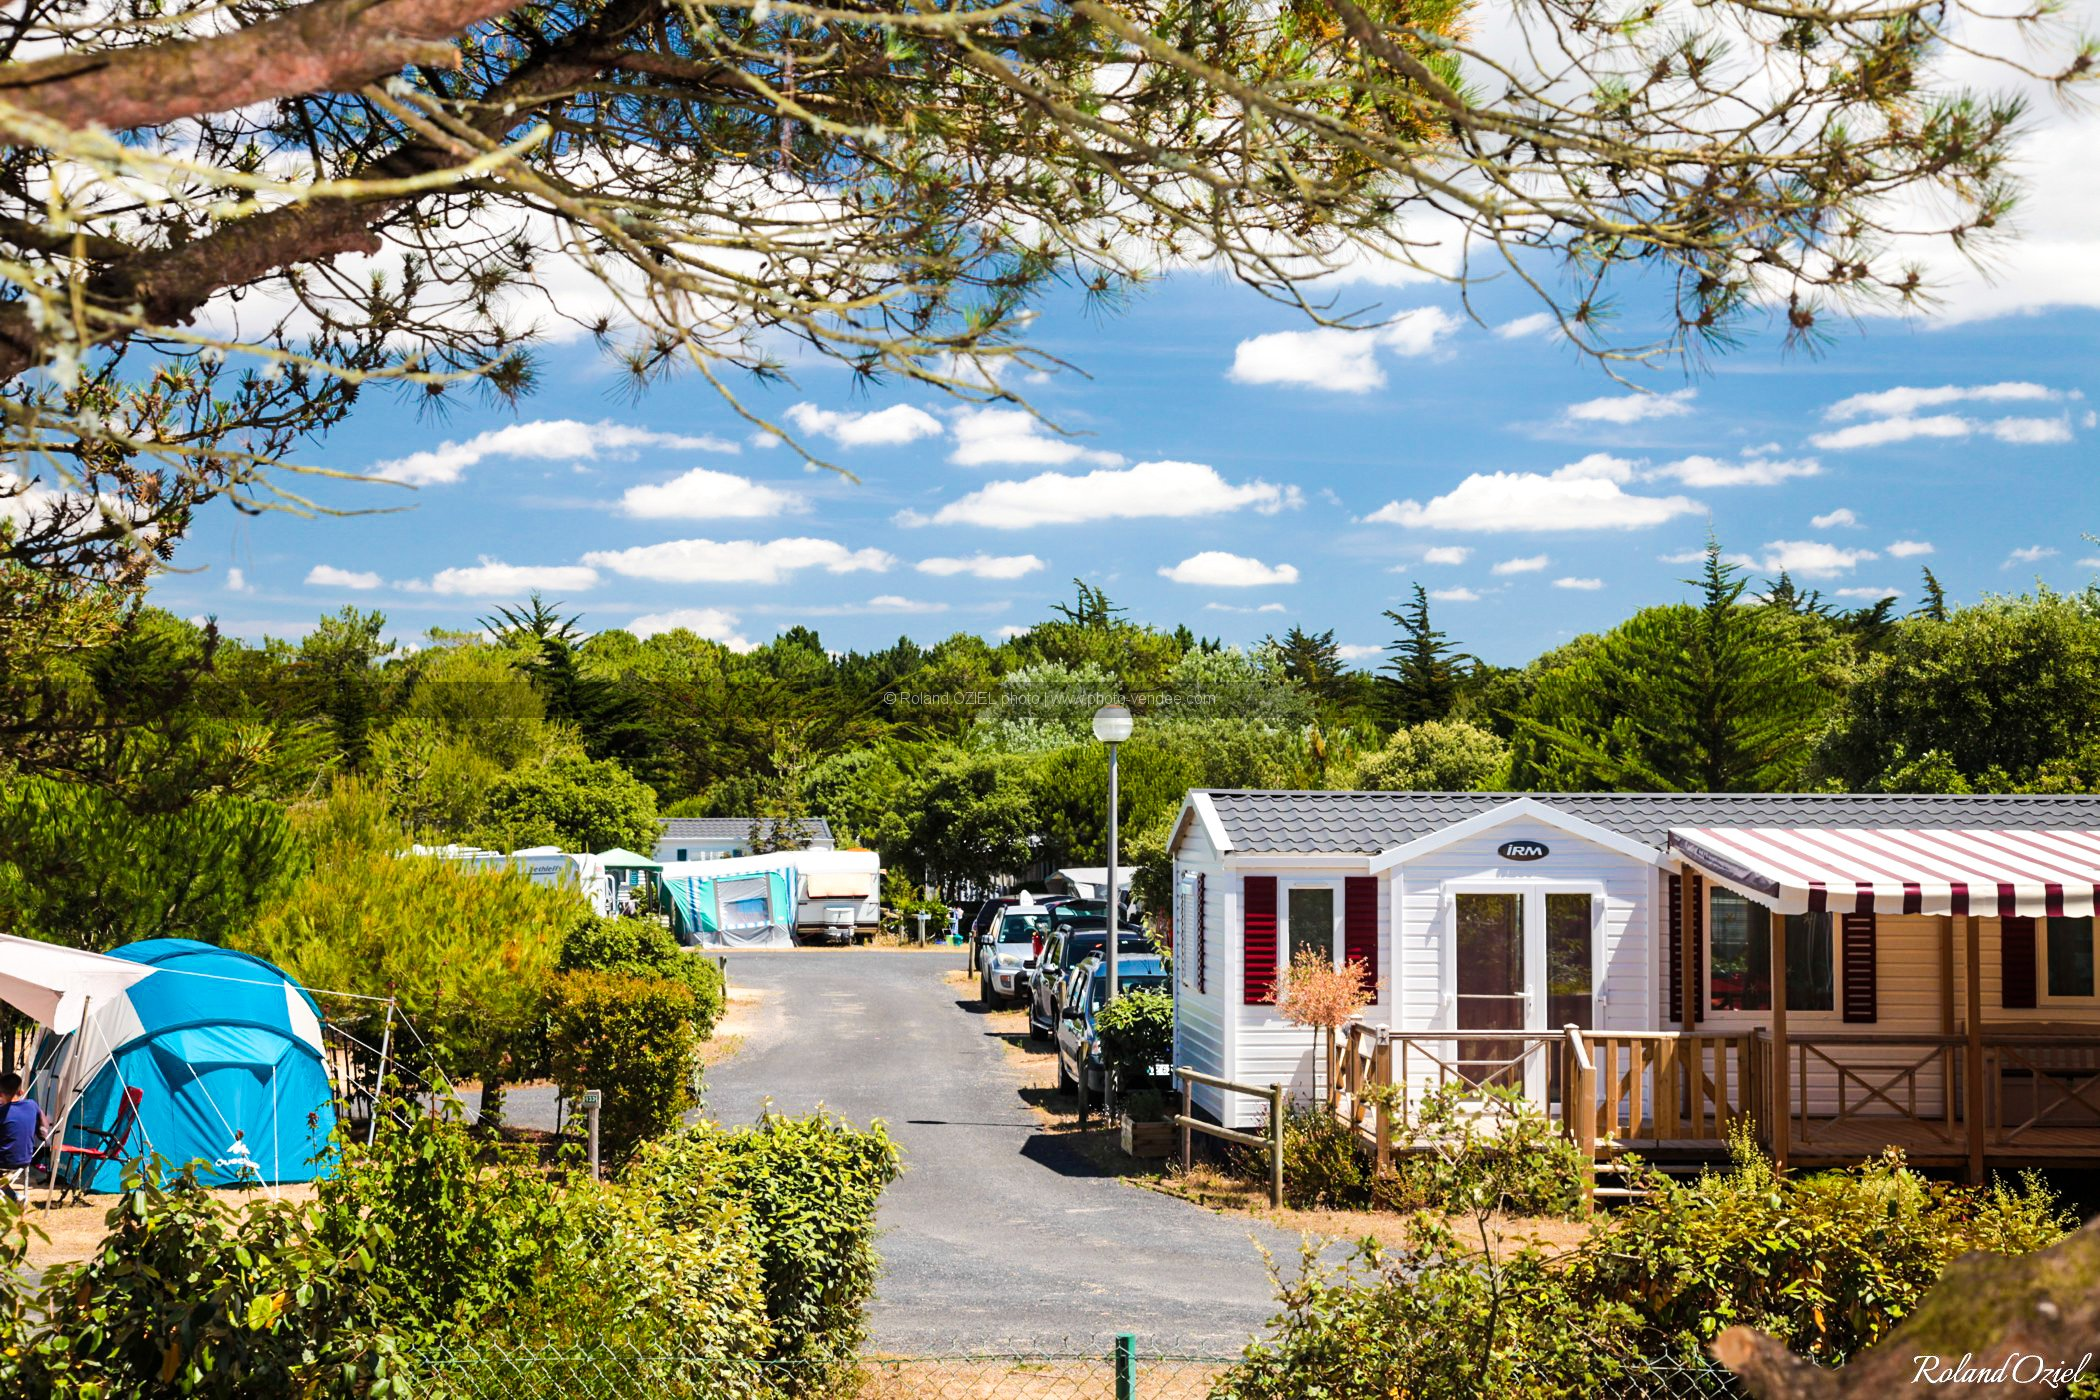 Photo camping saint hilaire de riez mobil-homes de Sion Vendée